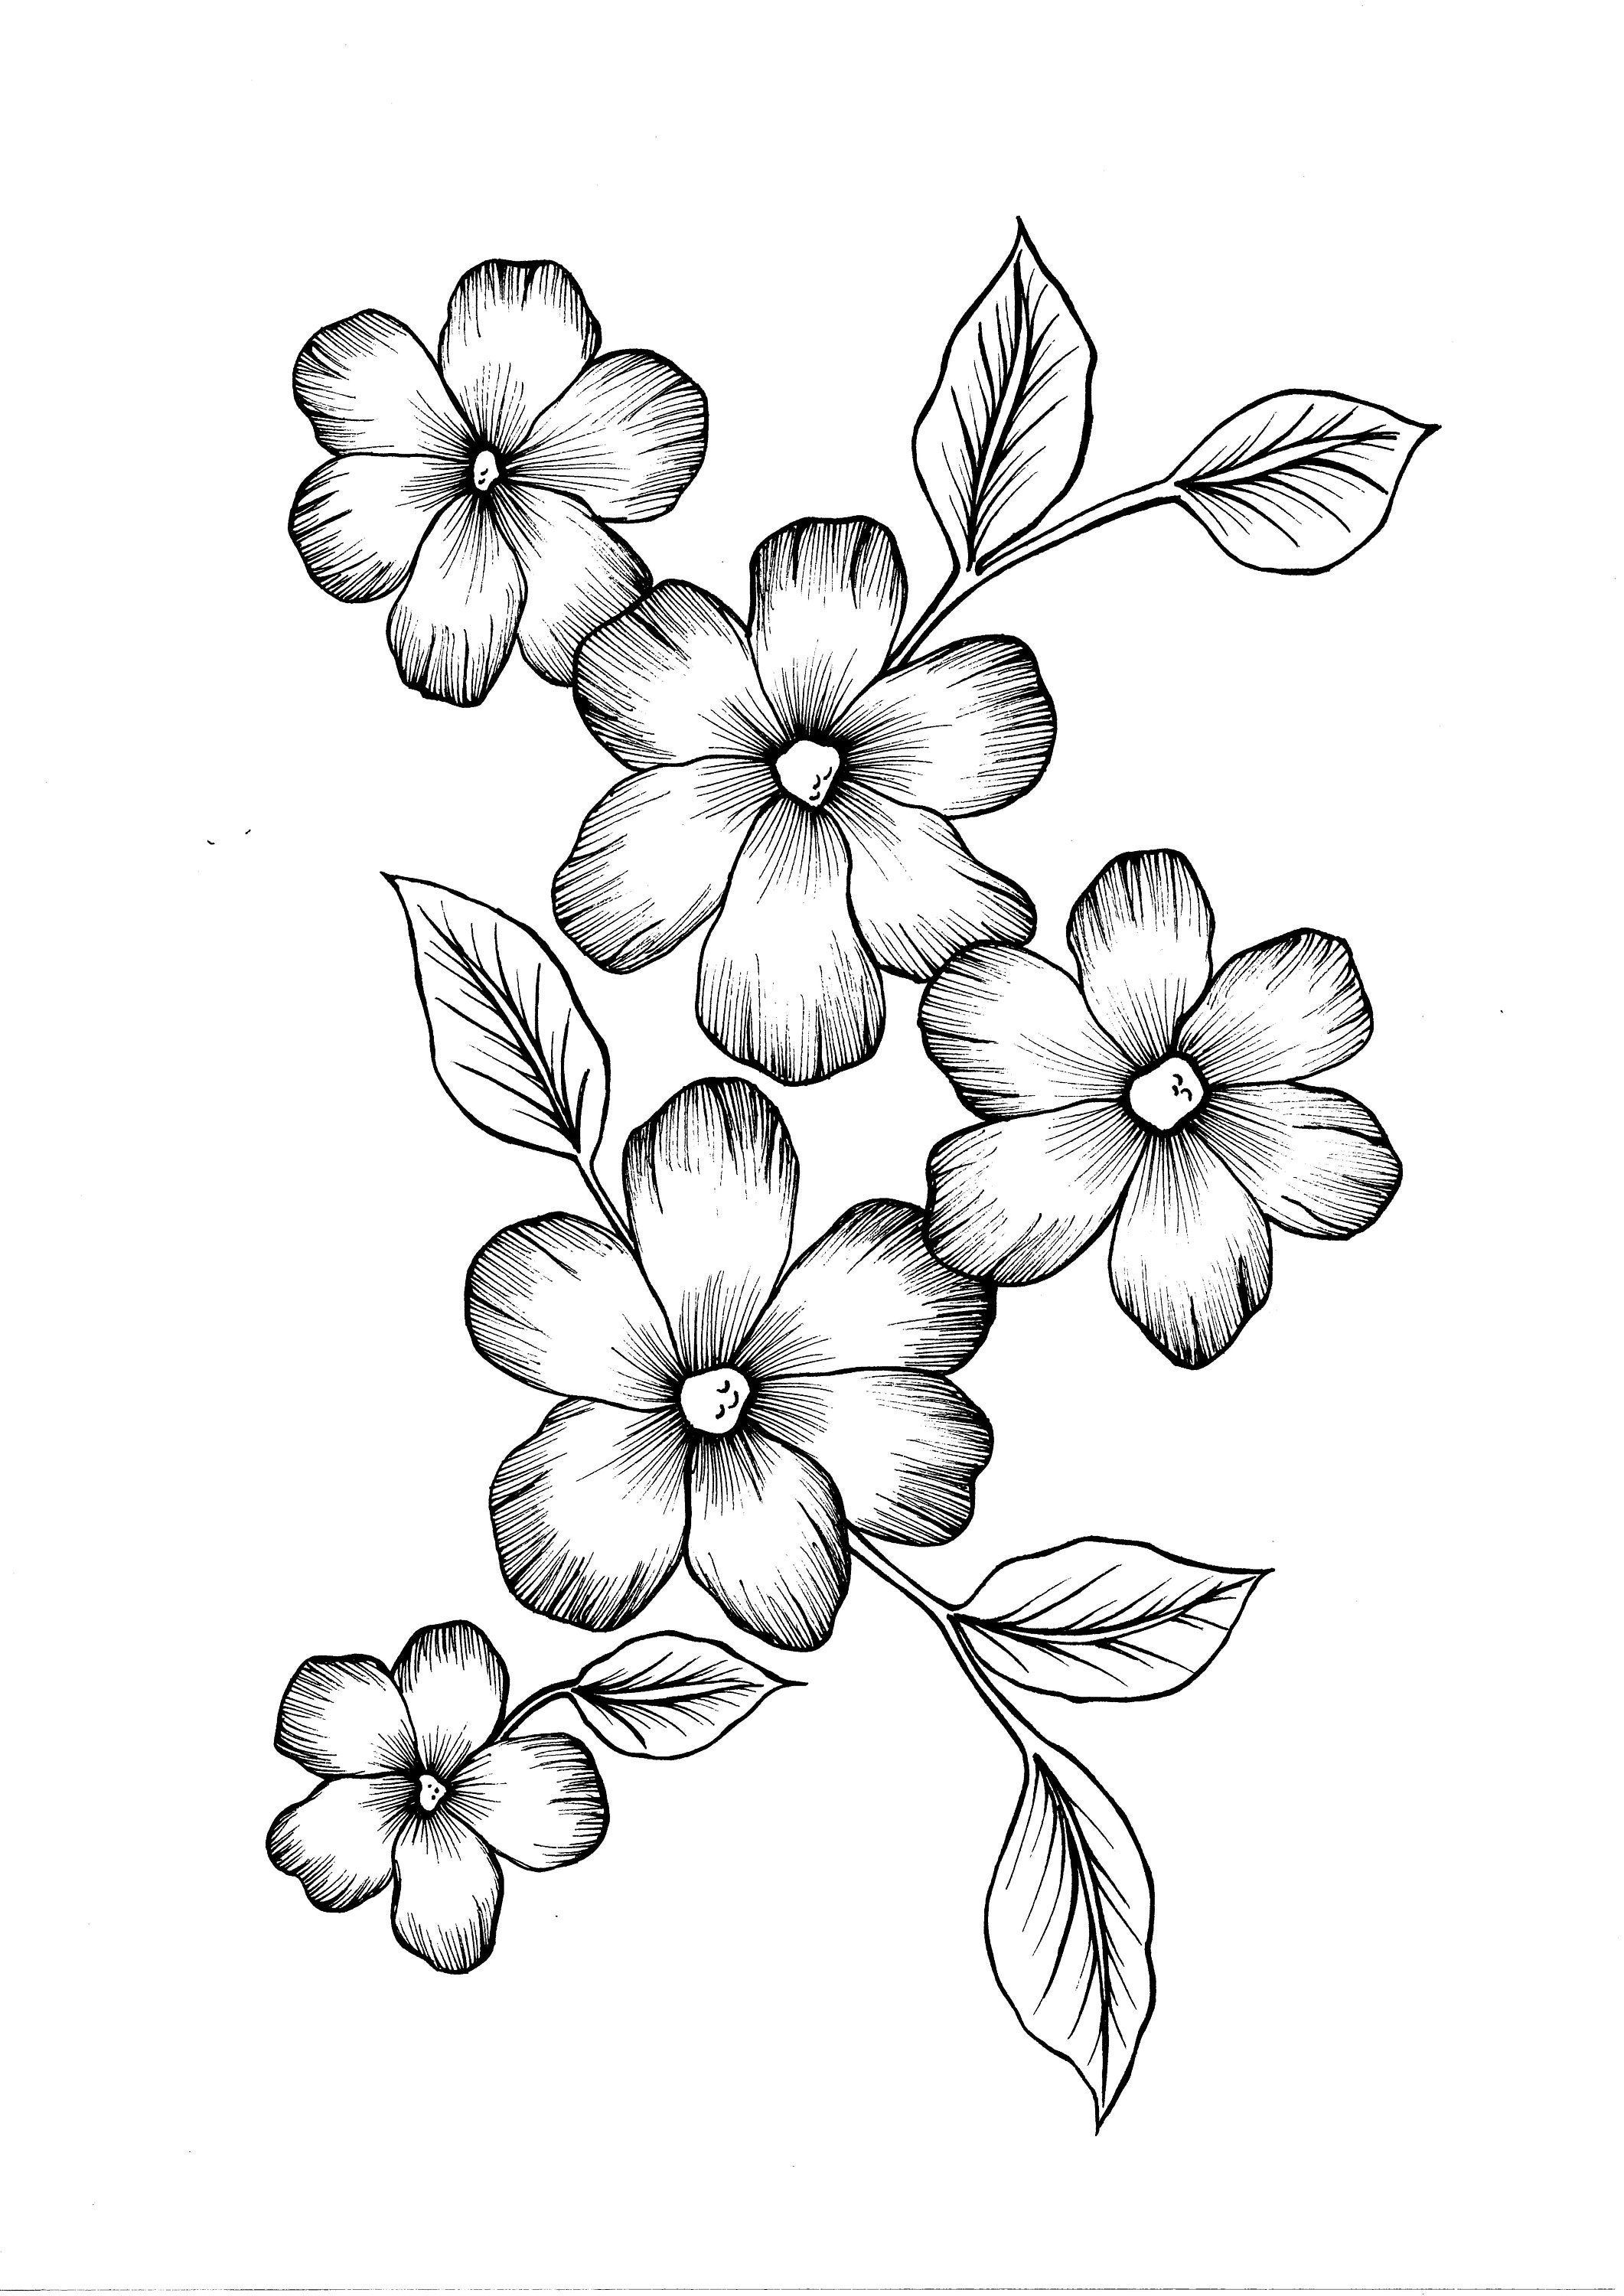 Wild Flowers Pdf Coloring Page Etsy In 2020 Flower Art Drawing Flower Pattern Drawing Easy Flower Drawings